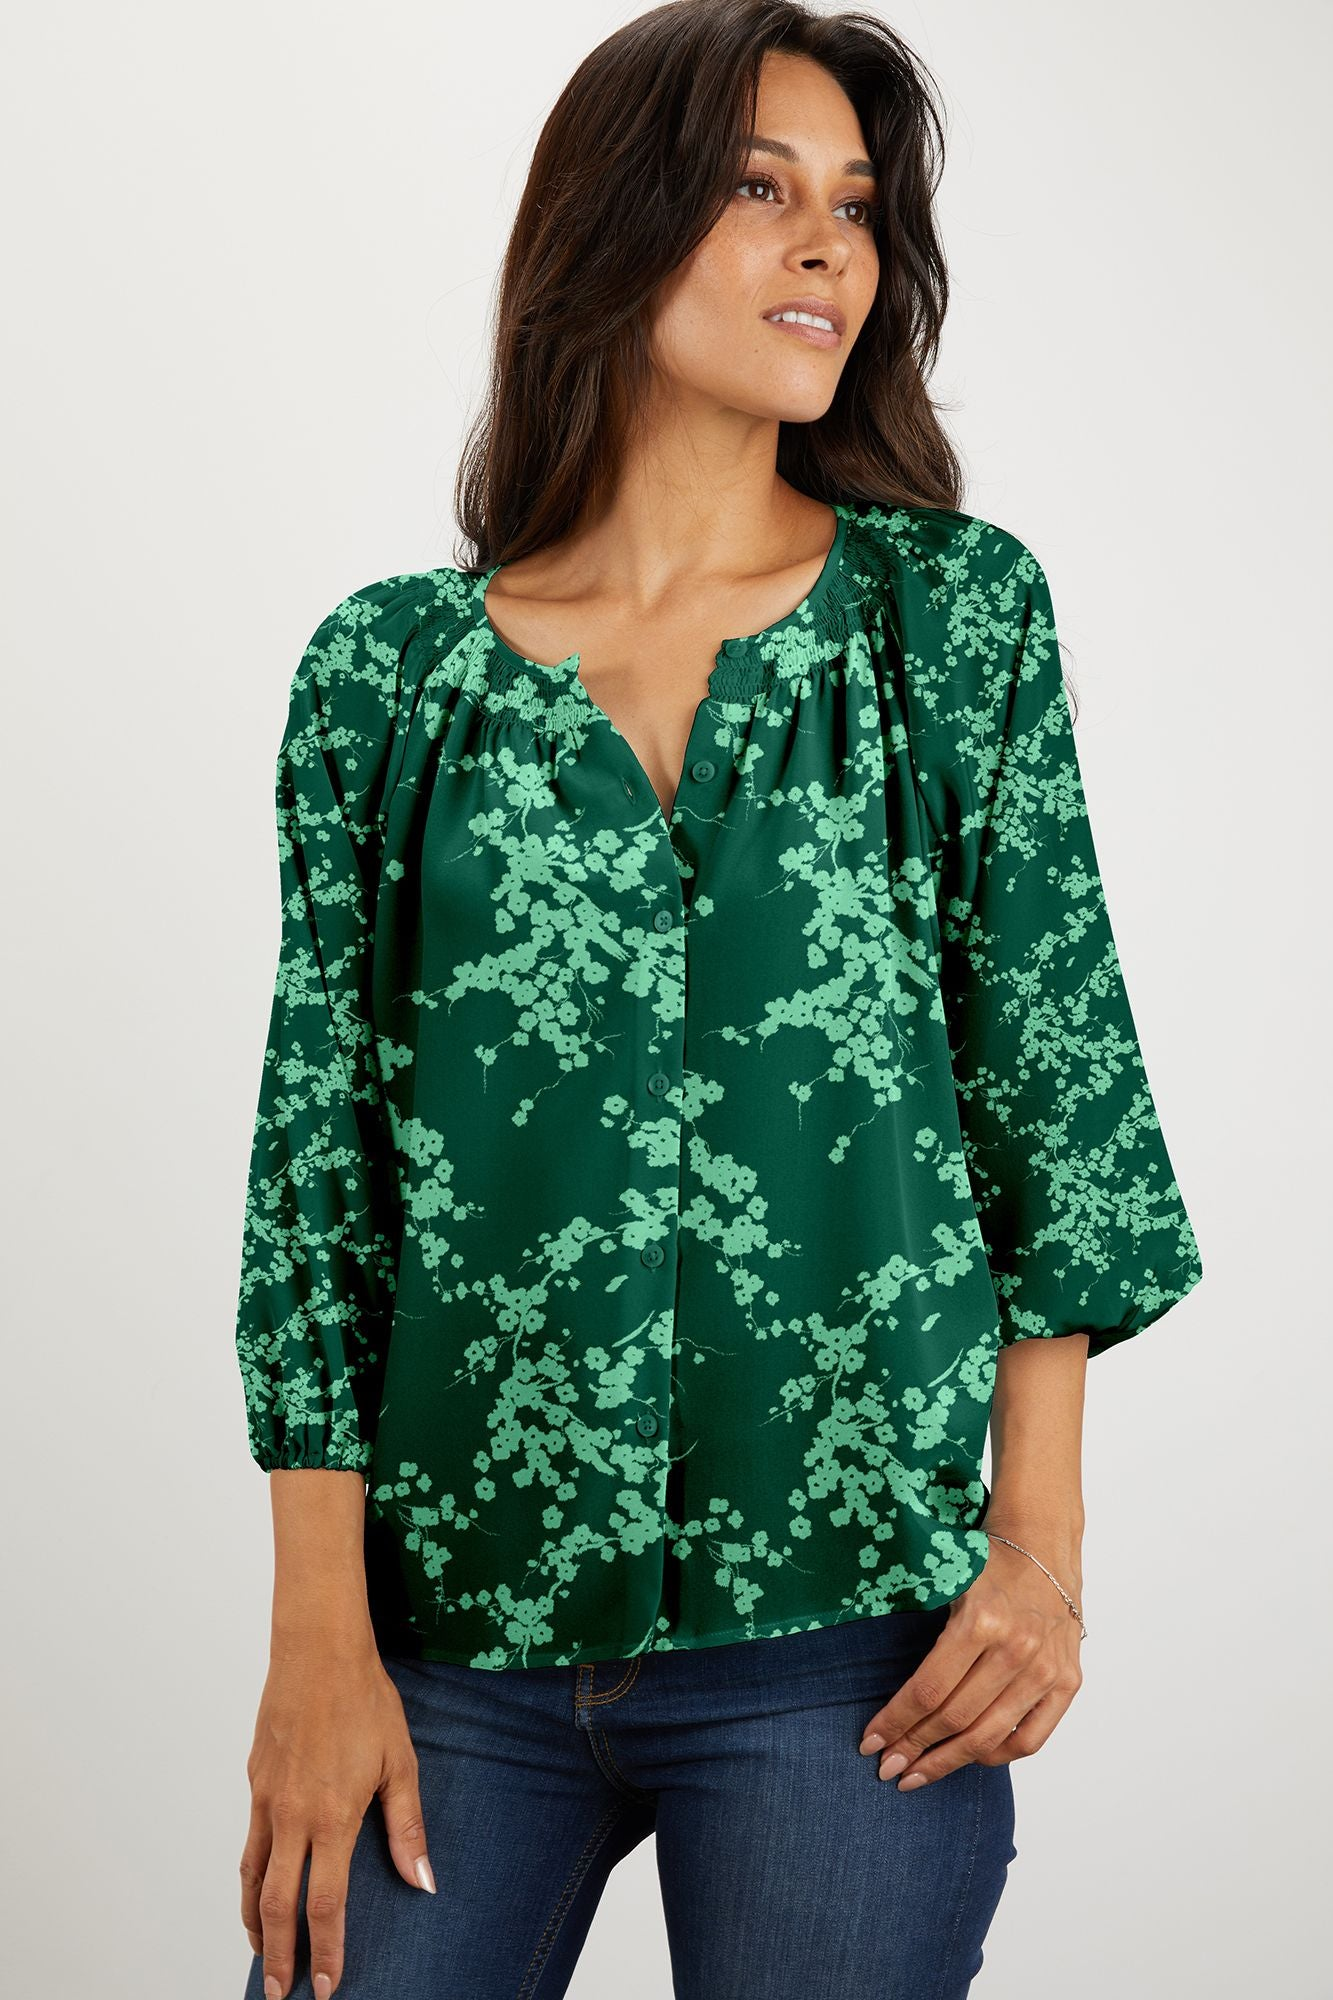 The Classic Blouse | Emerald Love Duet